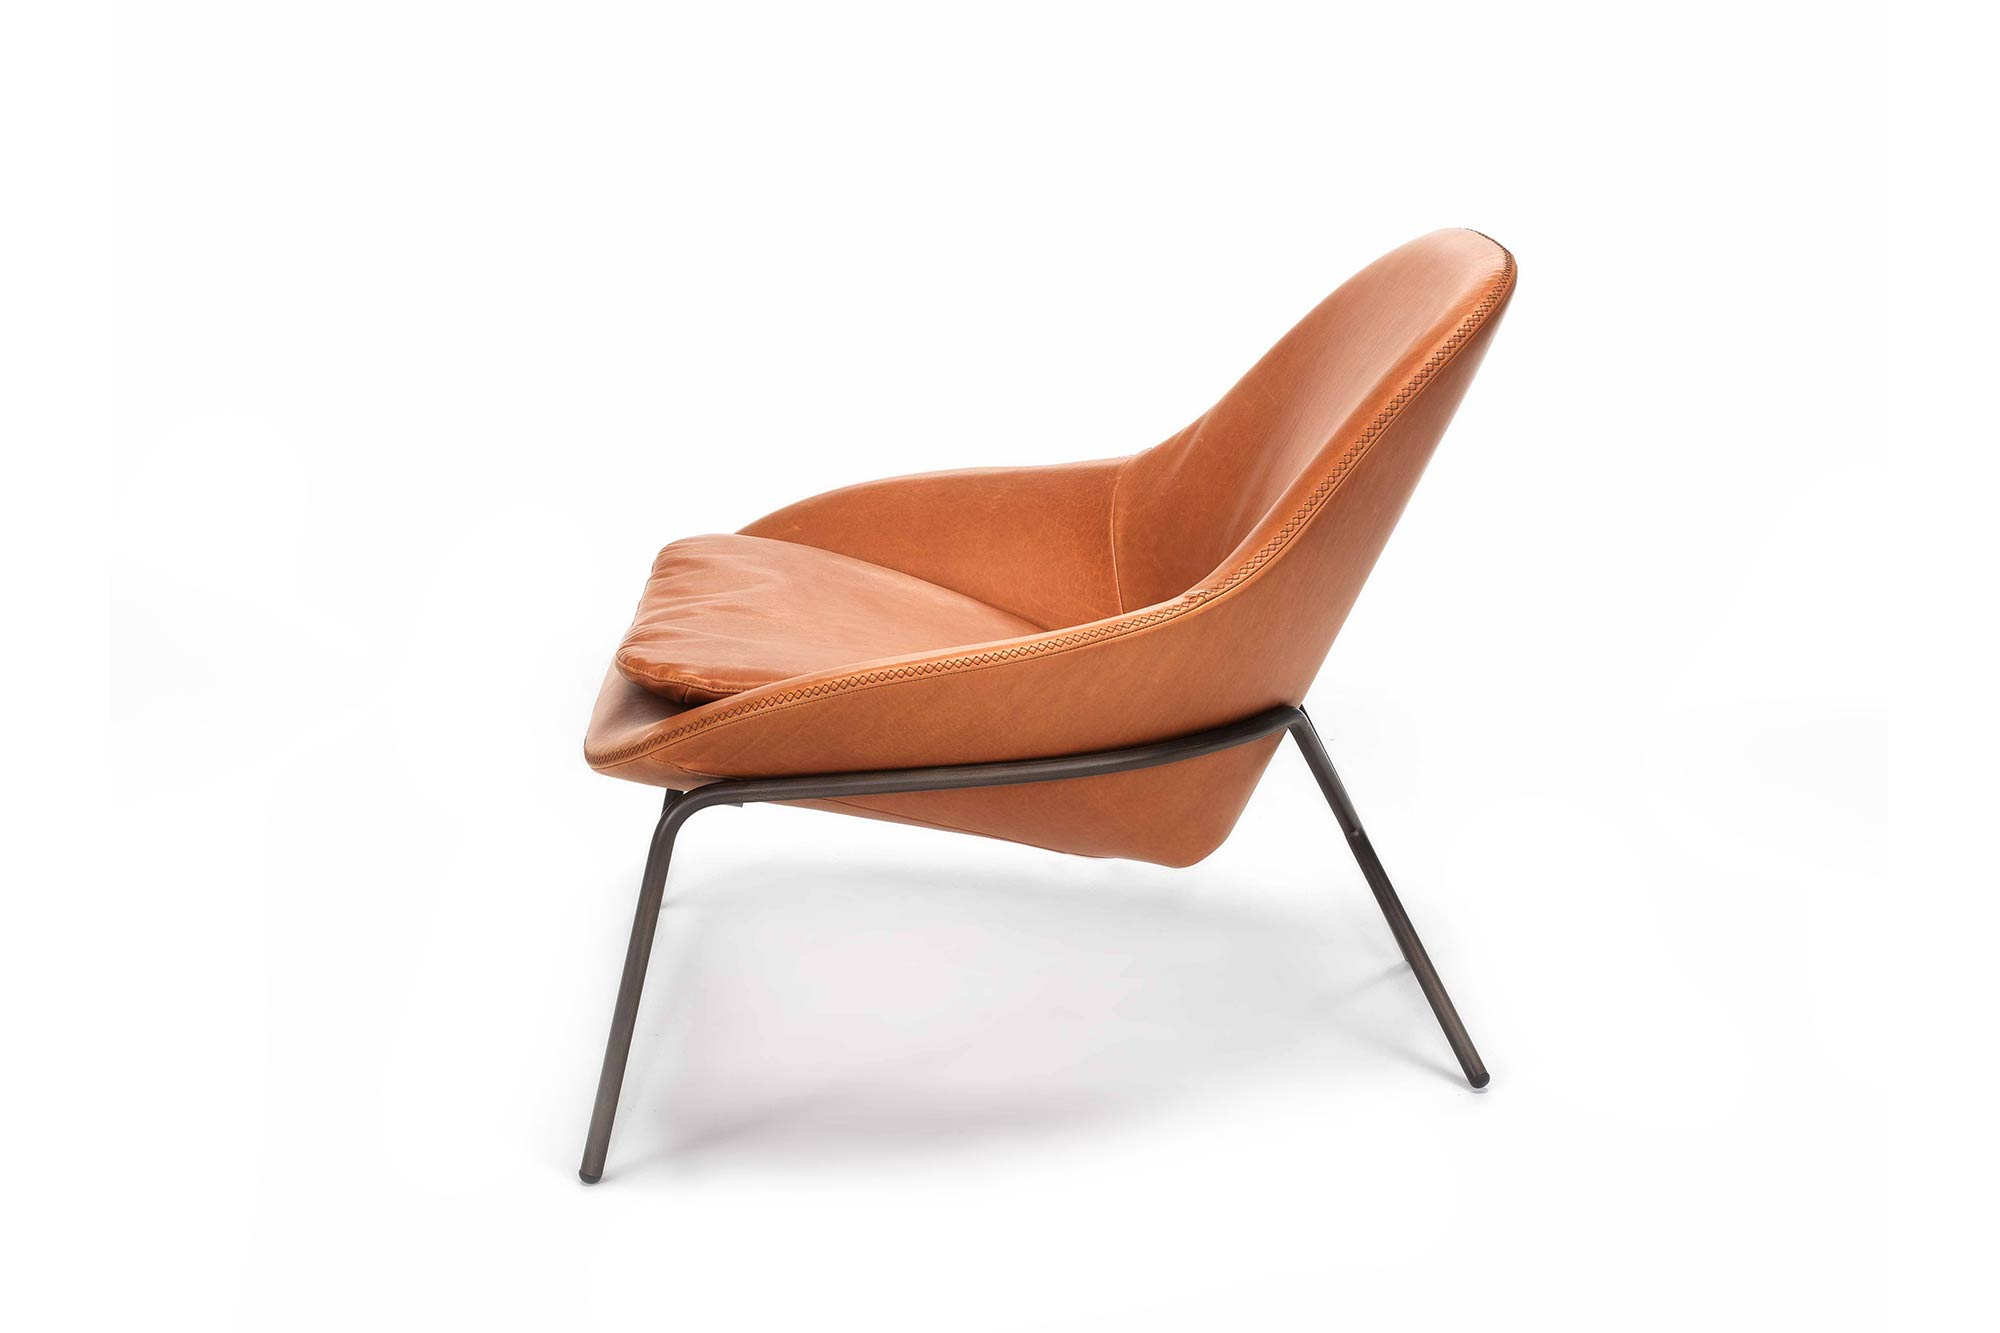 chair leg design genuine leather recliner chairs cross at house london olympia magnus long